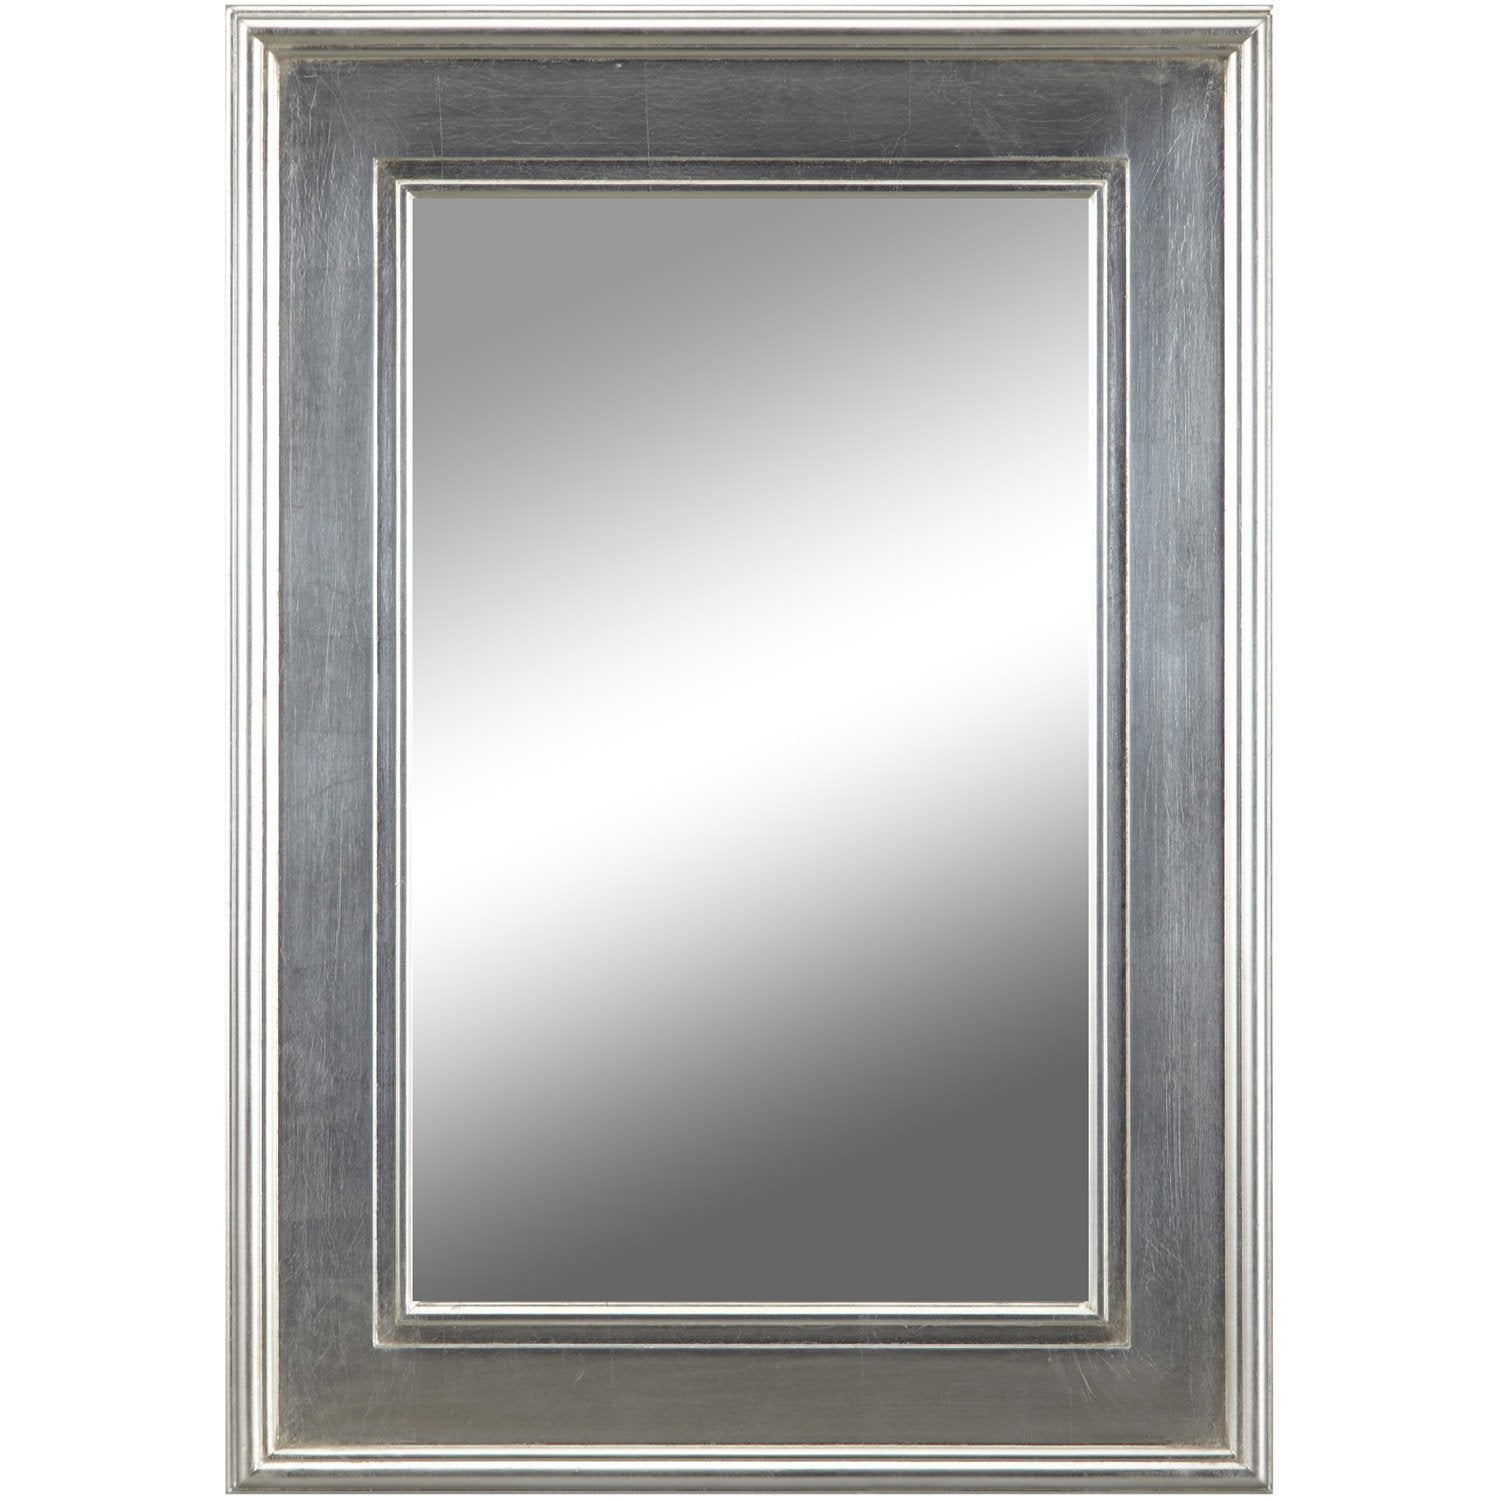 Miroir tisbury rectangle argent 50x70 cm leroy merlin for Miroir 160 x 50